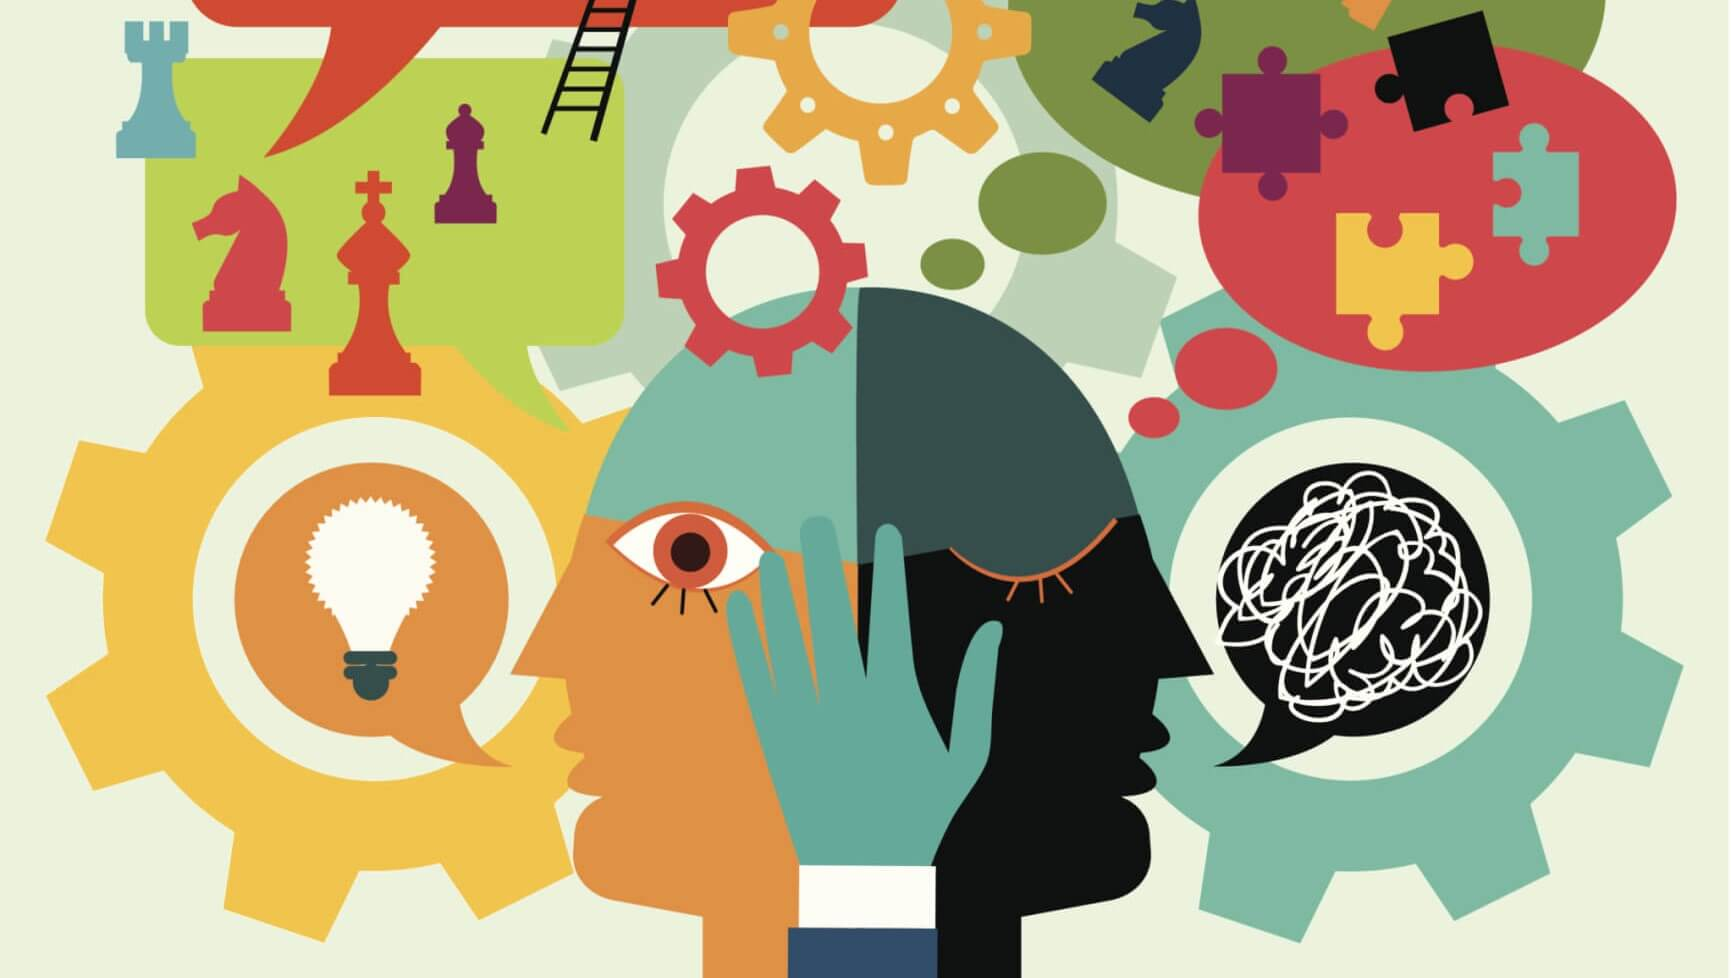 How To Increase Organisational Intelligence By 80 IQ Points